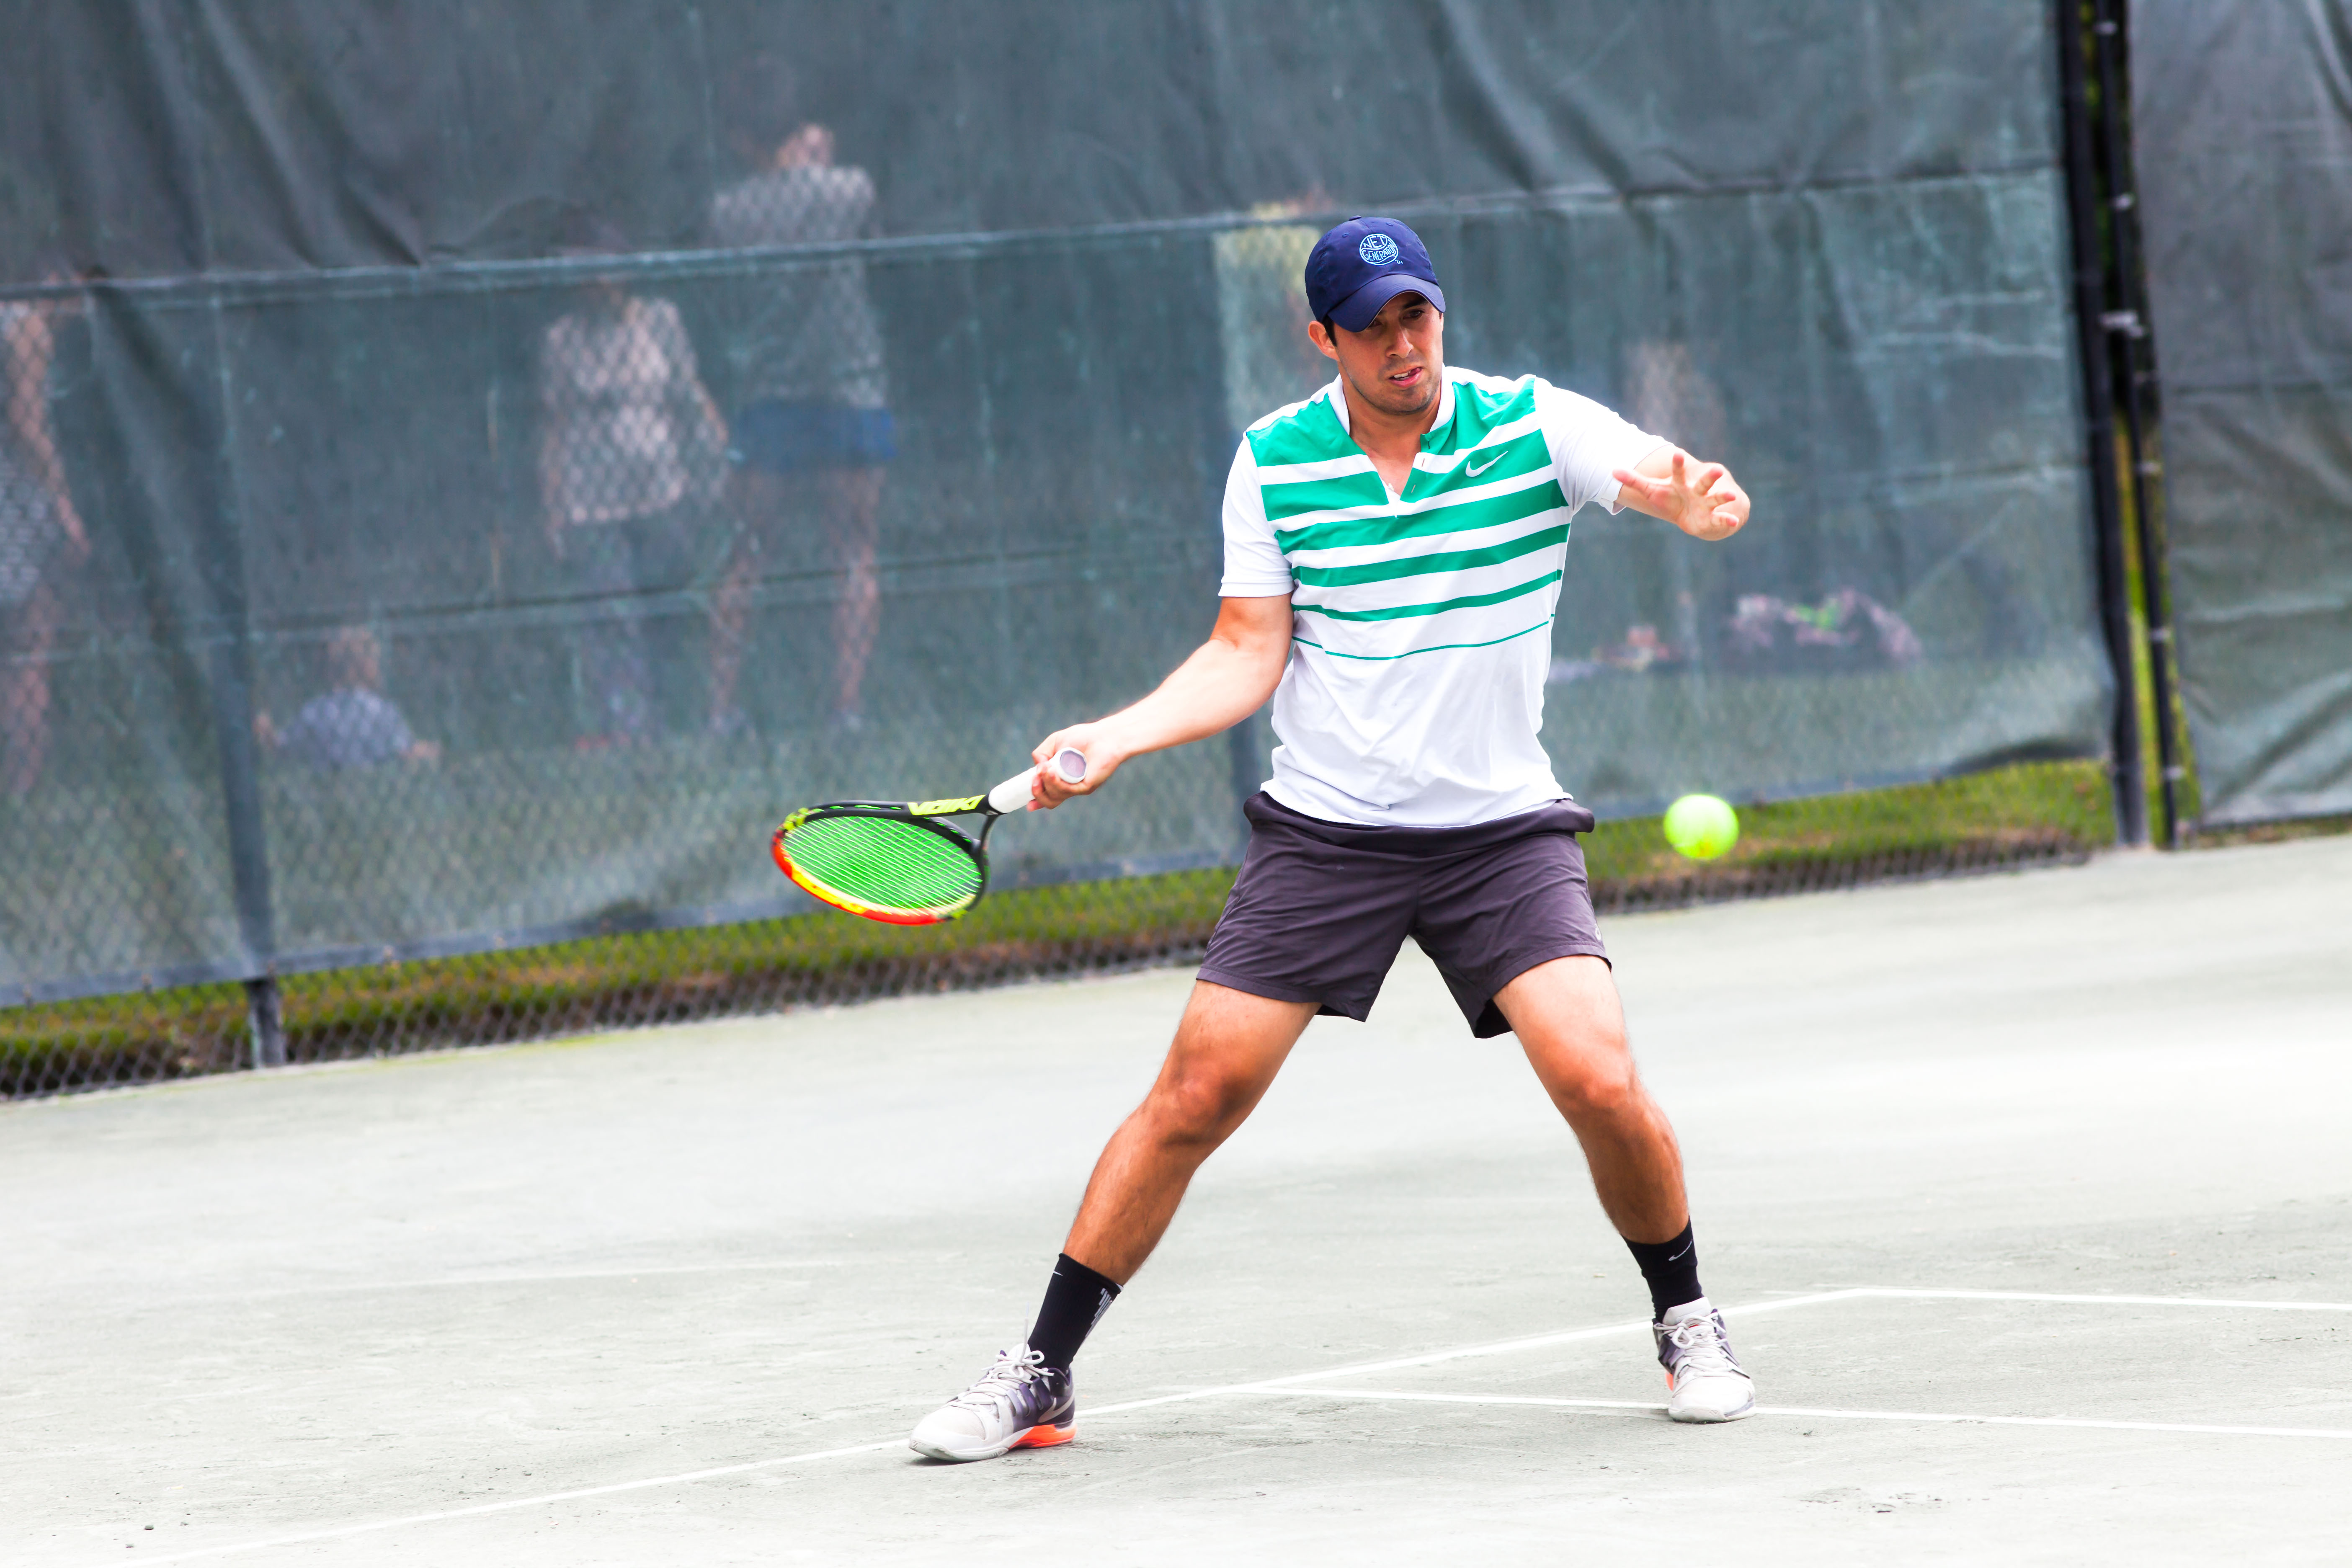 Gustavo Loza, Tennis Service Representative for the USTA Eastern Metro Region, still finds time to play competitive tennis as pictured here taking part in the Long Island Tennis Magazine Challenge